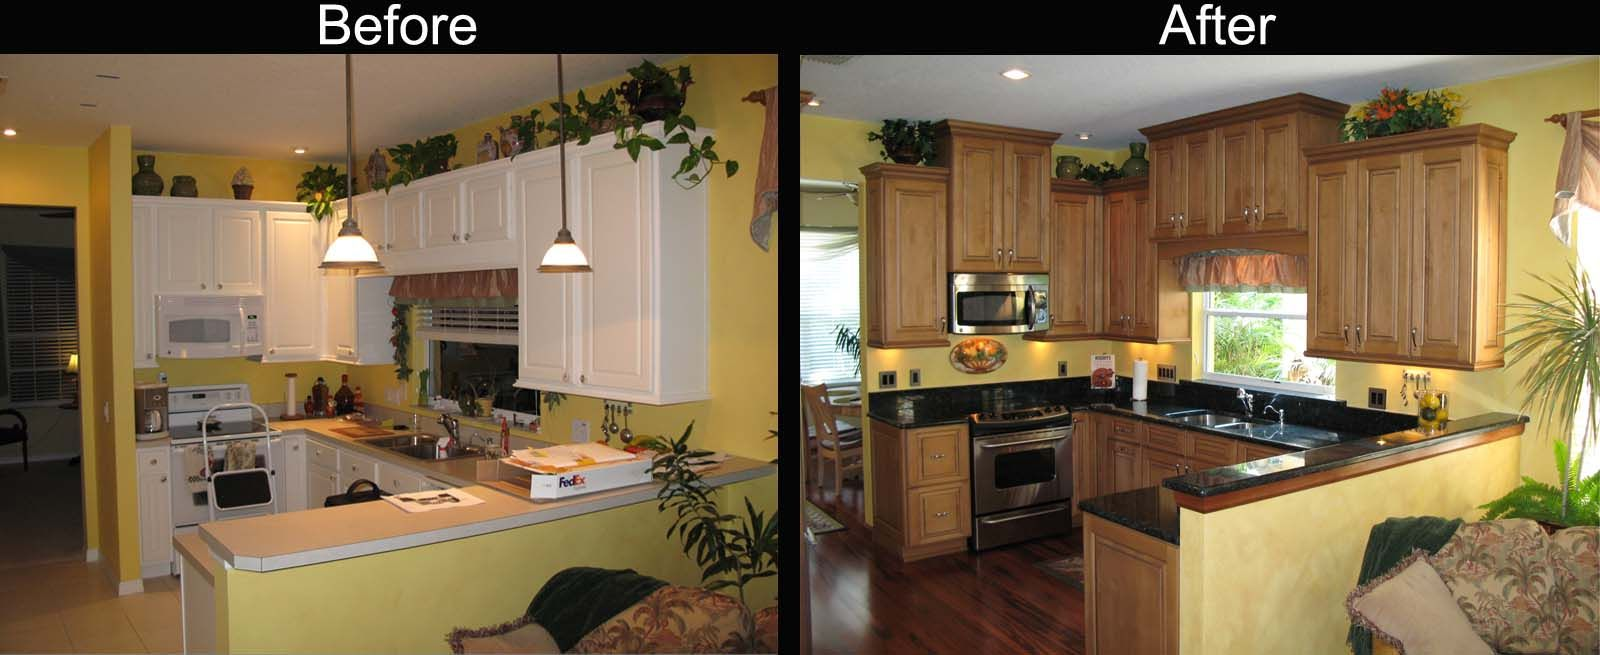 Kitchen Remodeling Ideas Before And After Property Cool Painted Cabinets Before And After Ideas For Your Kitchen . Design Inspiration